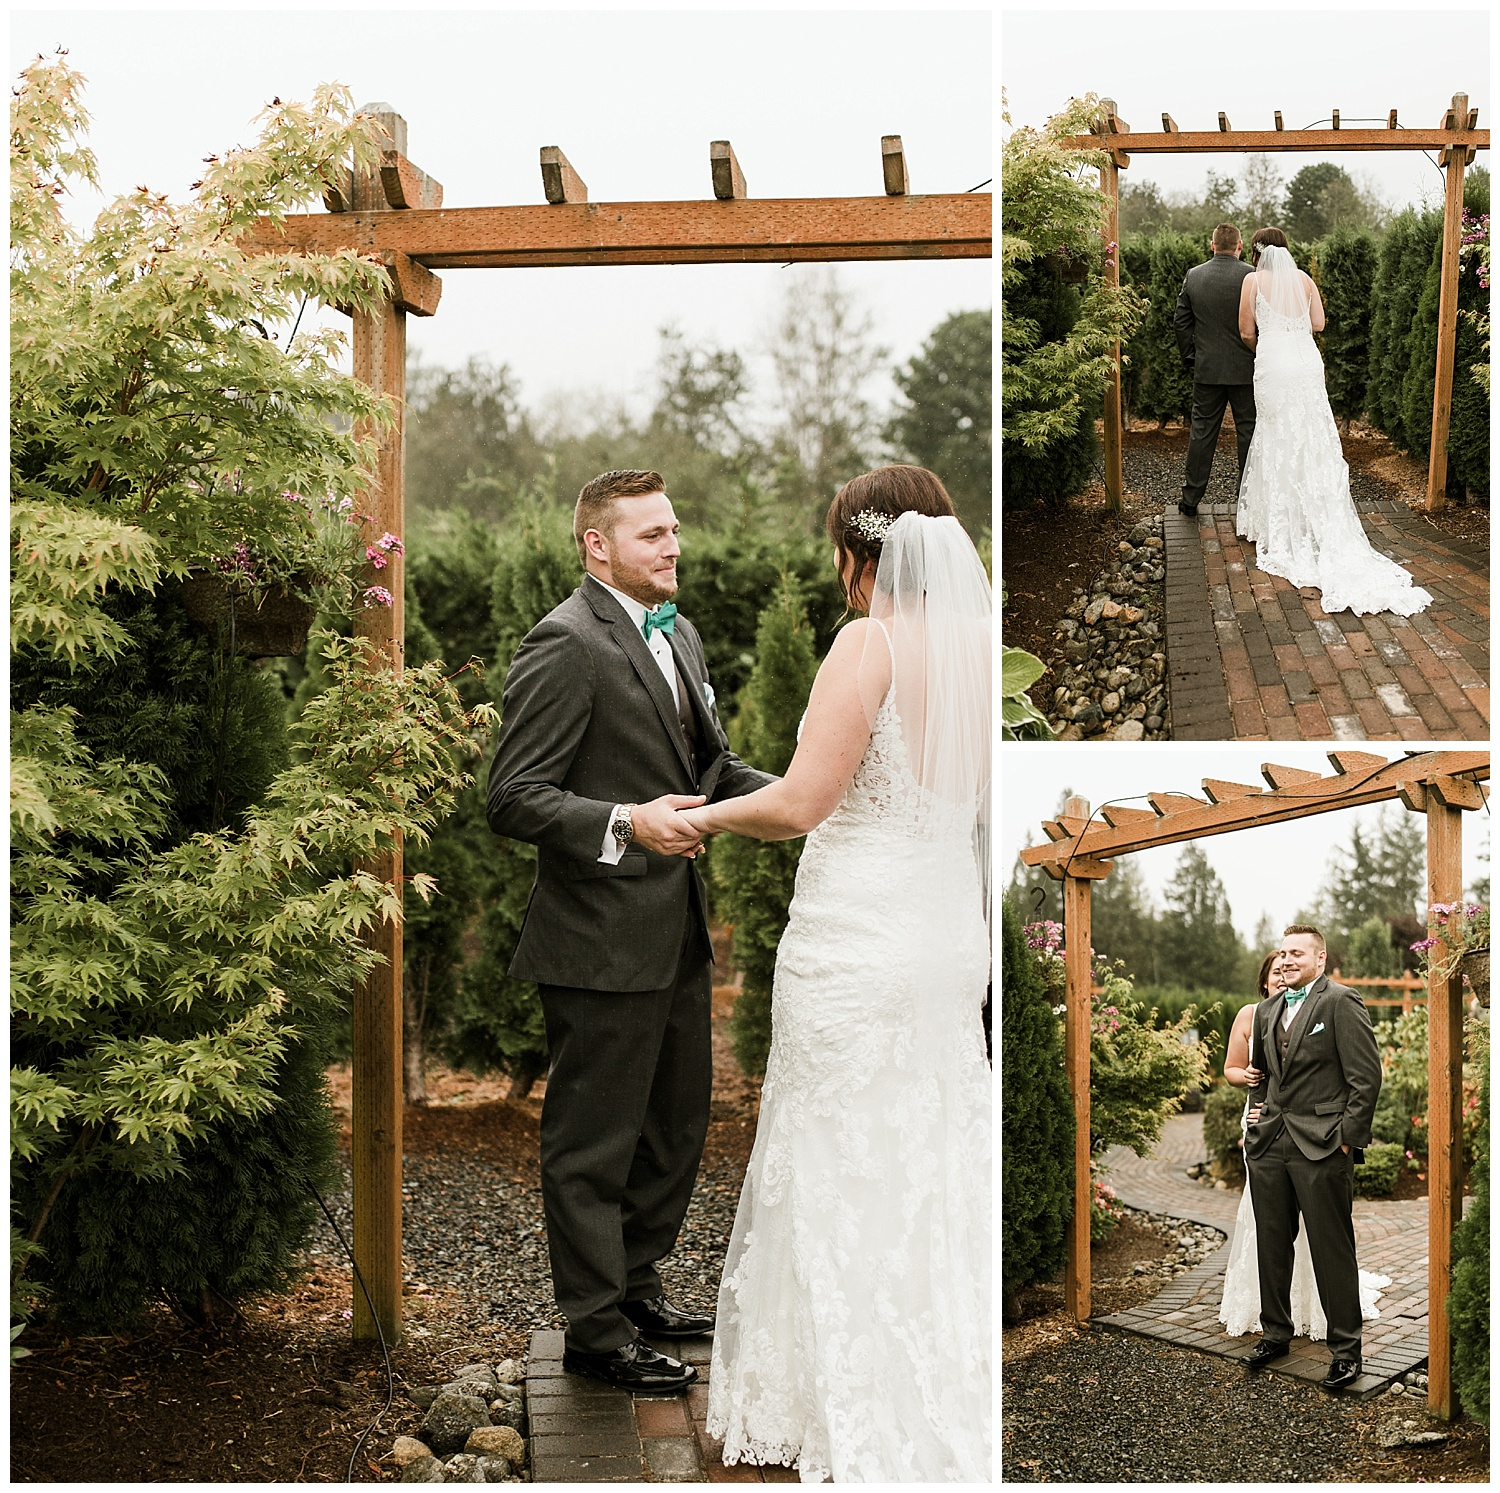 Rustic Chic Wedding | wedding day first look ideas | PNW wedding photographer